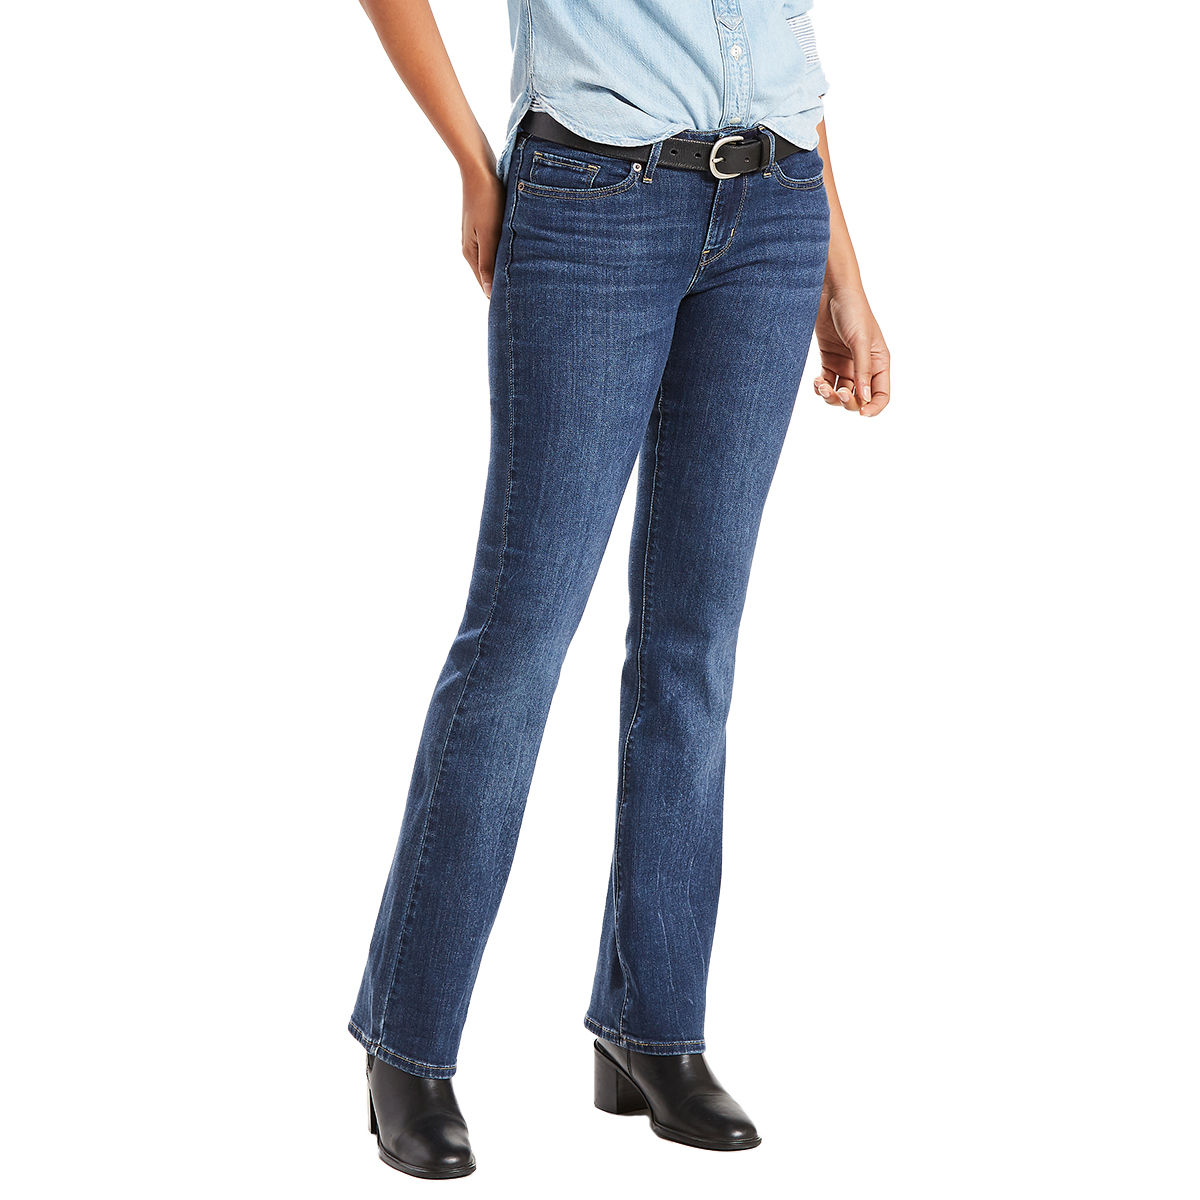 Levi's Women's 715 Vintage Boot Cut Jeans - Blue, 32